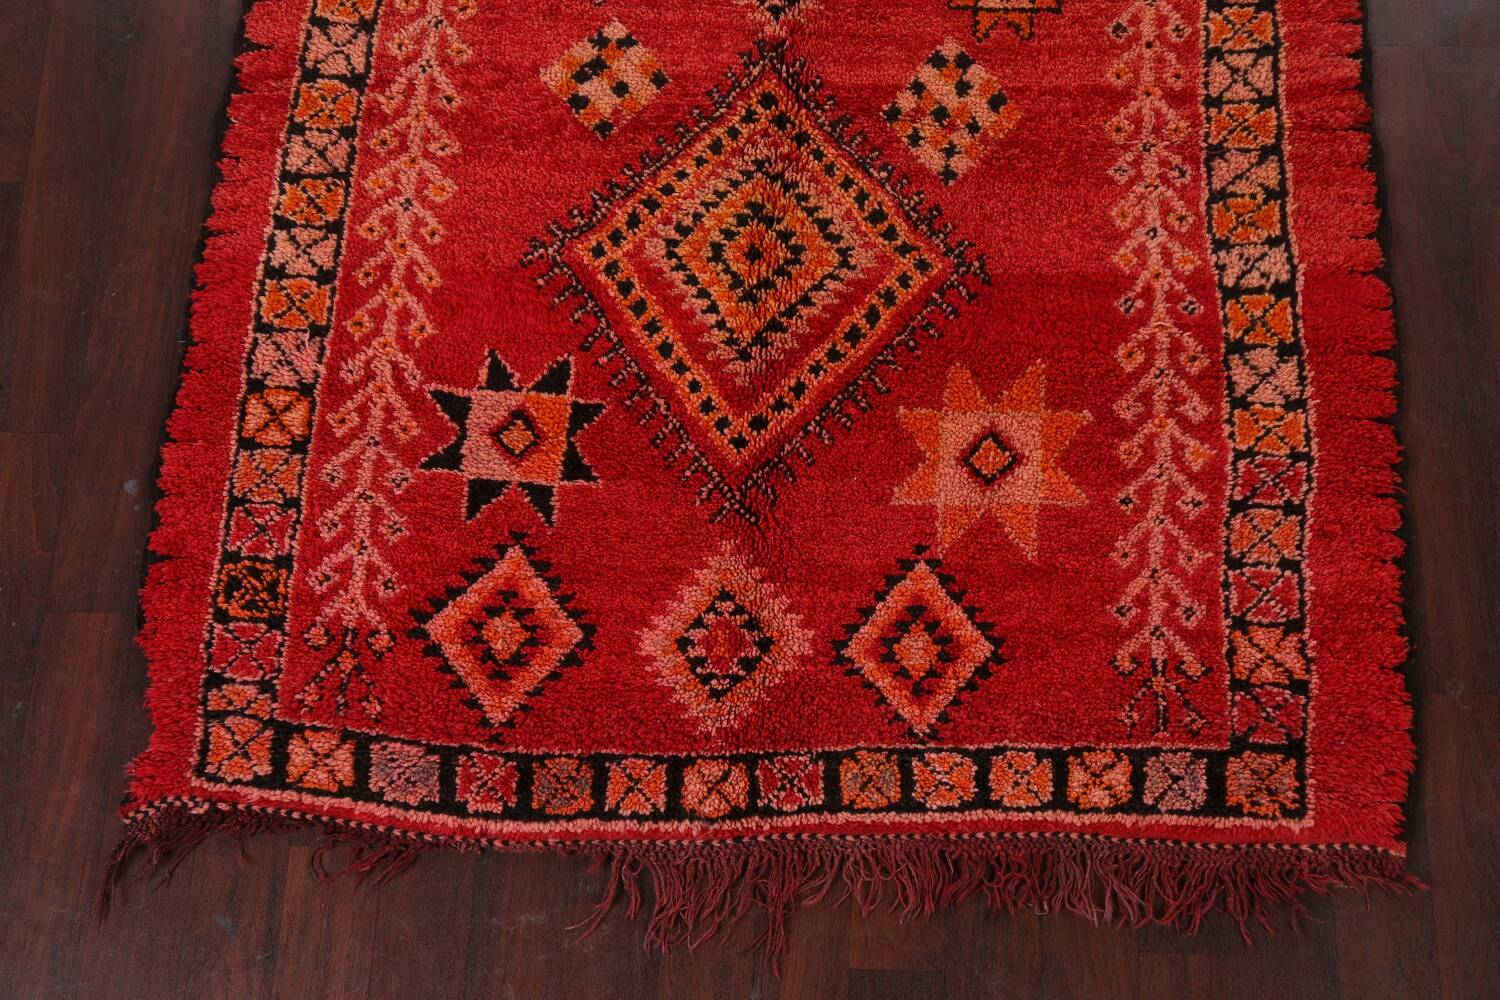 Red Moroccan Berber Area Rug 6x11 image 5